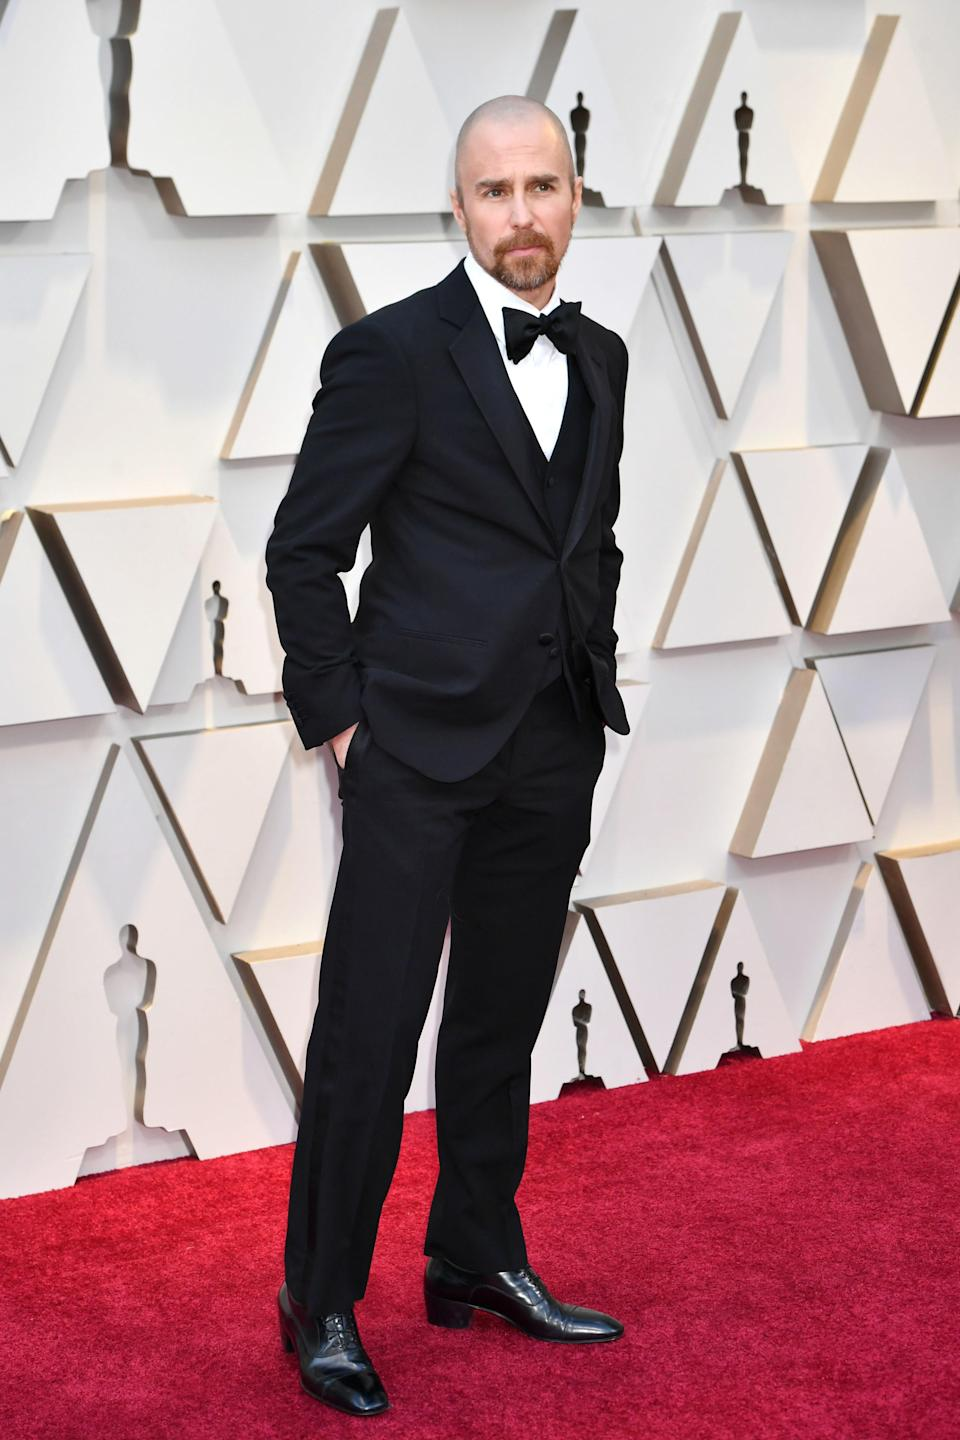 Sam Rockwell in Armani and Christian Louboutin shoes